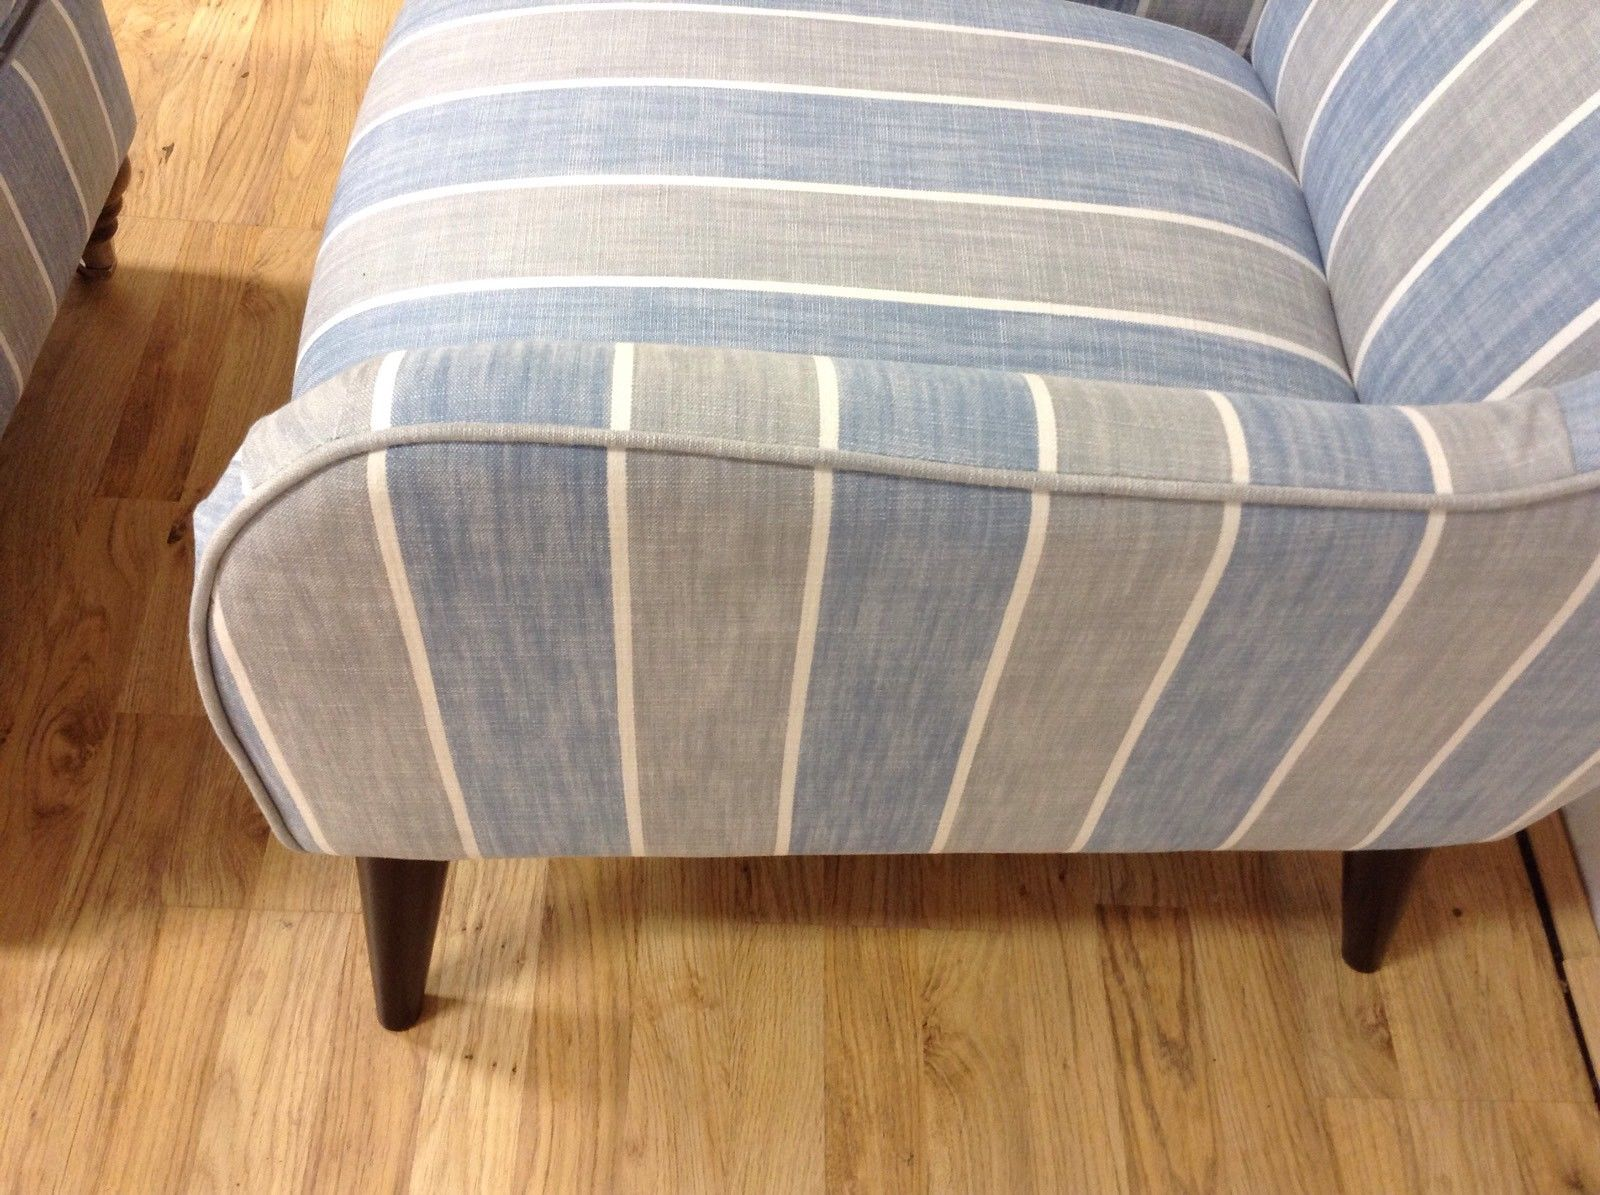 Beige Accent Chairs With Blue Stripes.Darcey Accent Chair In Blue Grey Striped Fabric